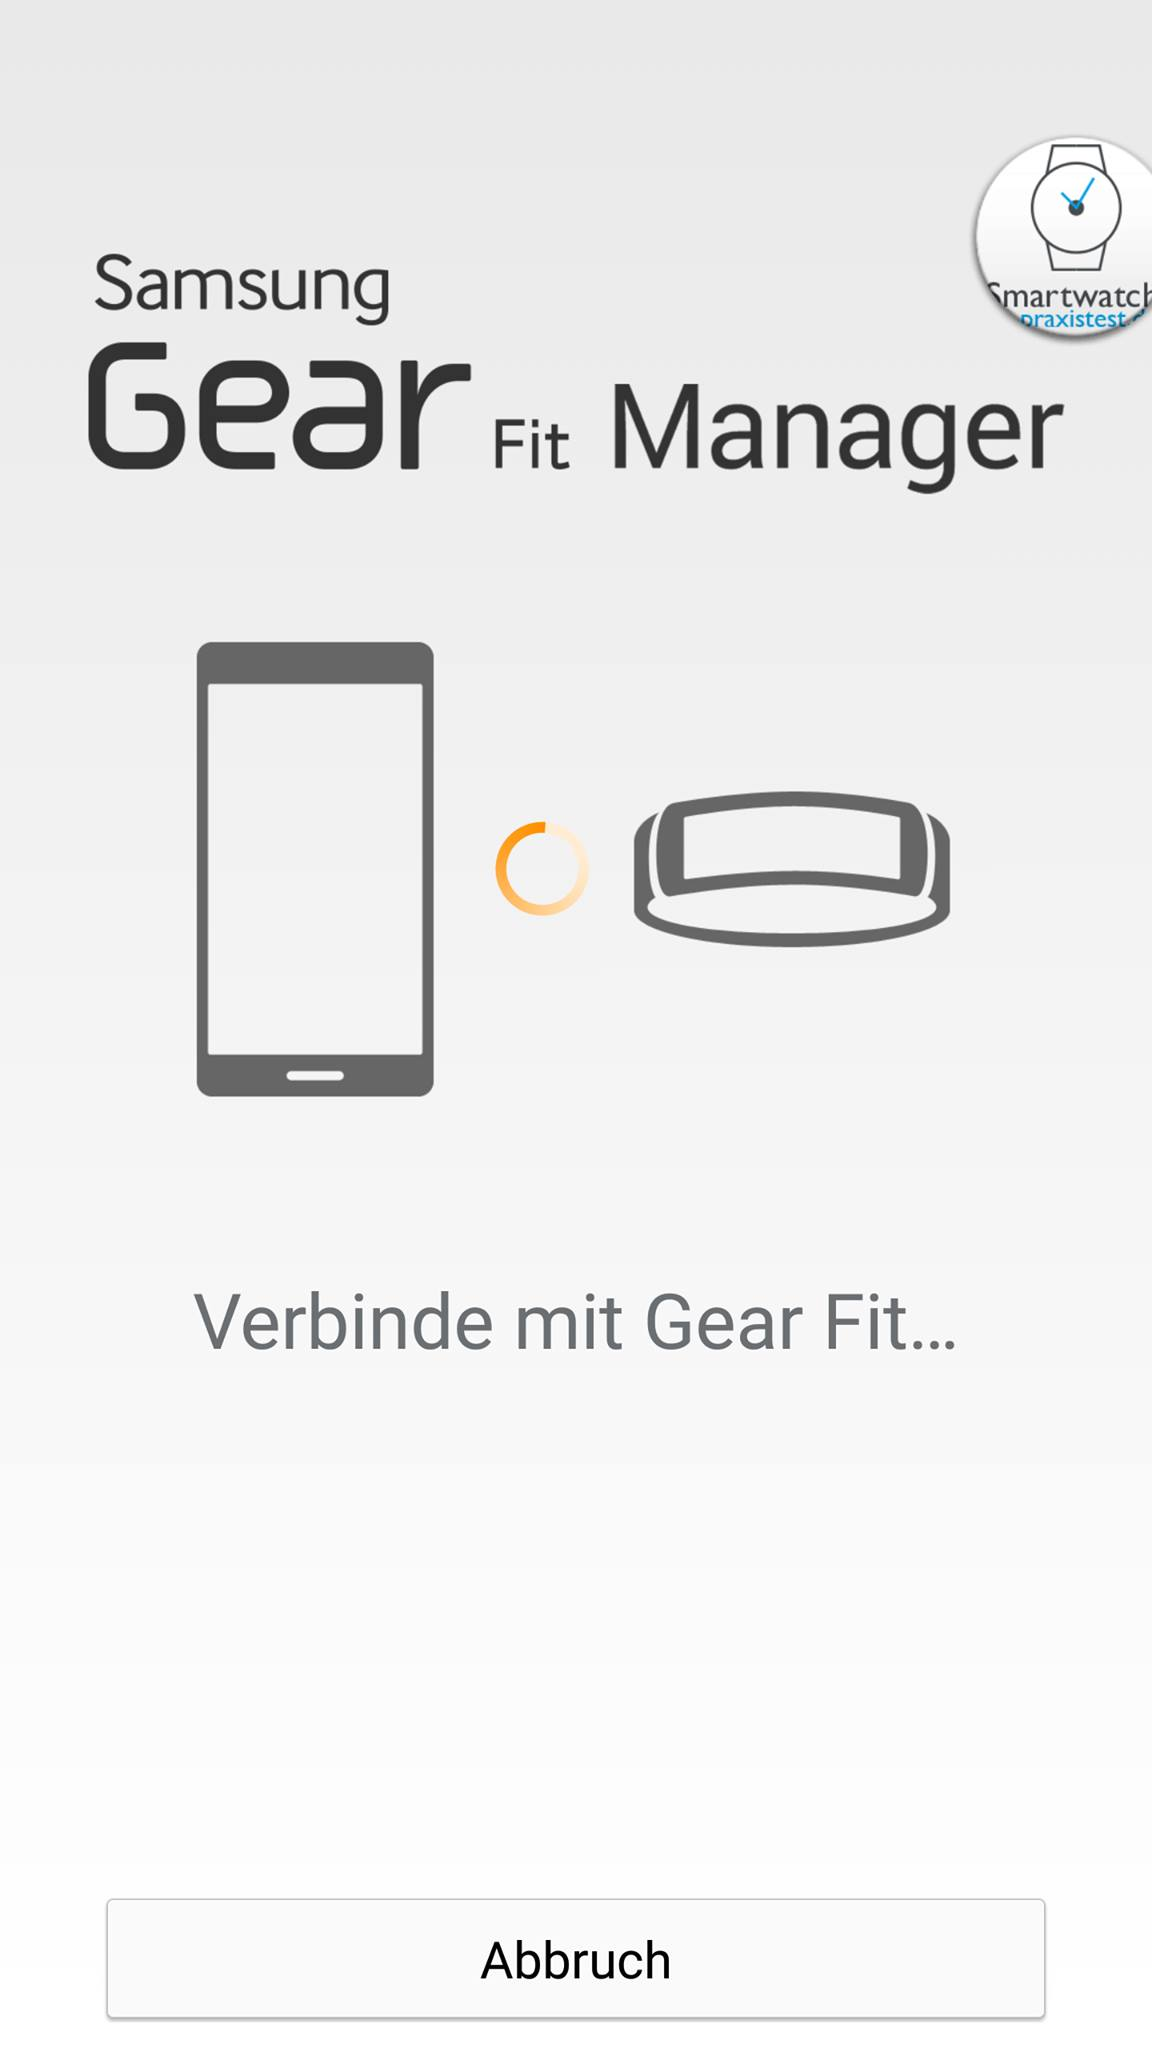 Gear Fit Manager